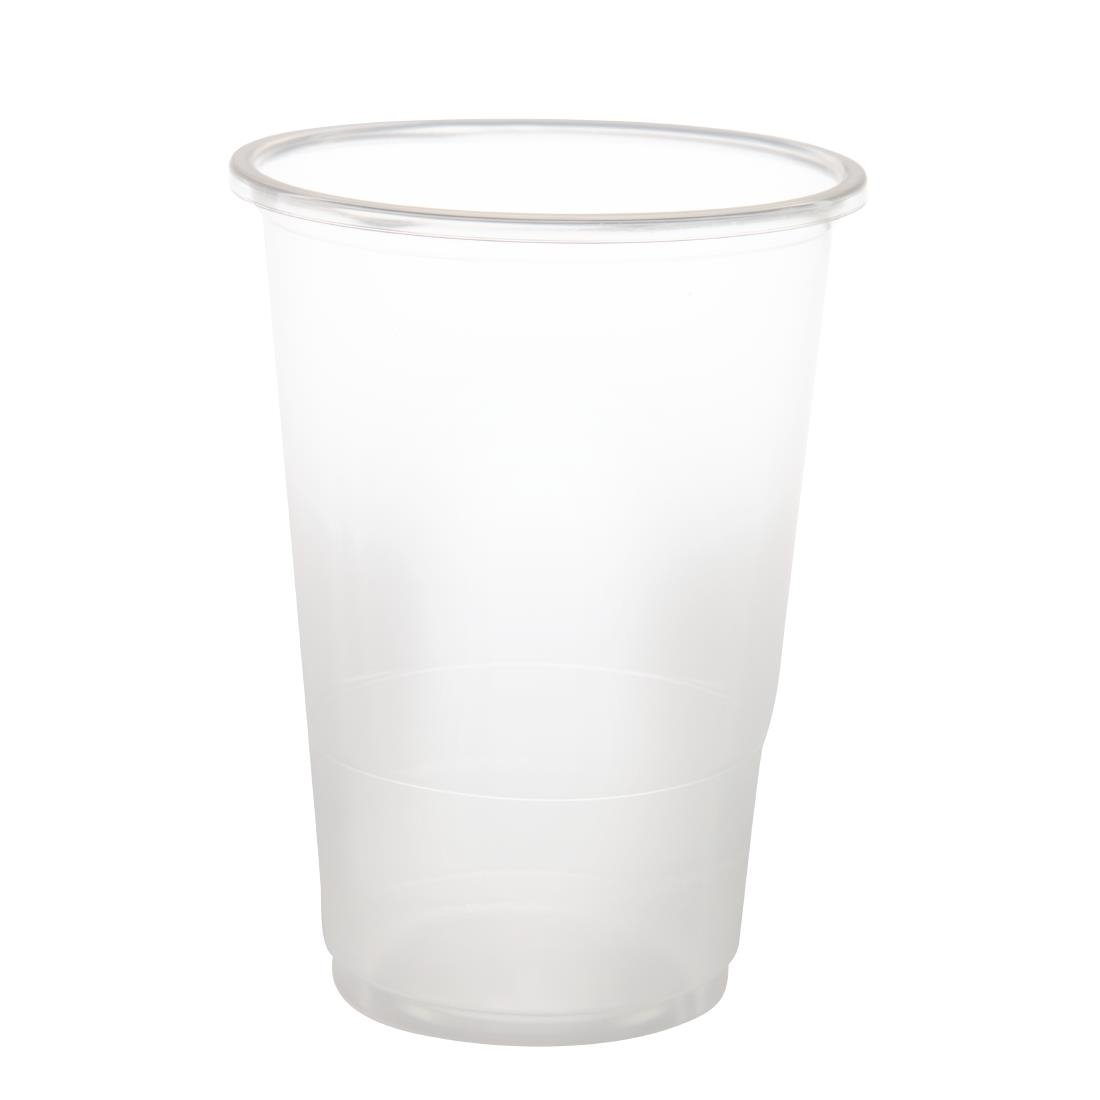 Image of eGreen Disposable Half Pint Glass 10oz To Brim (Pack of 1000) Pack of 1000